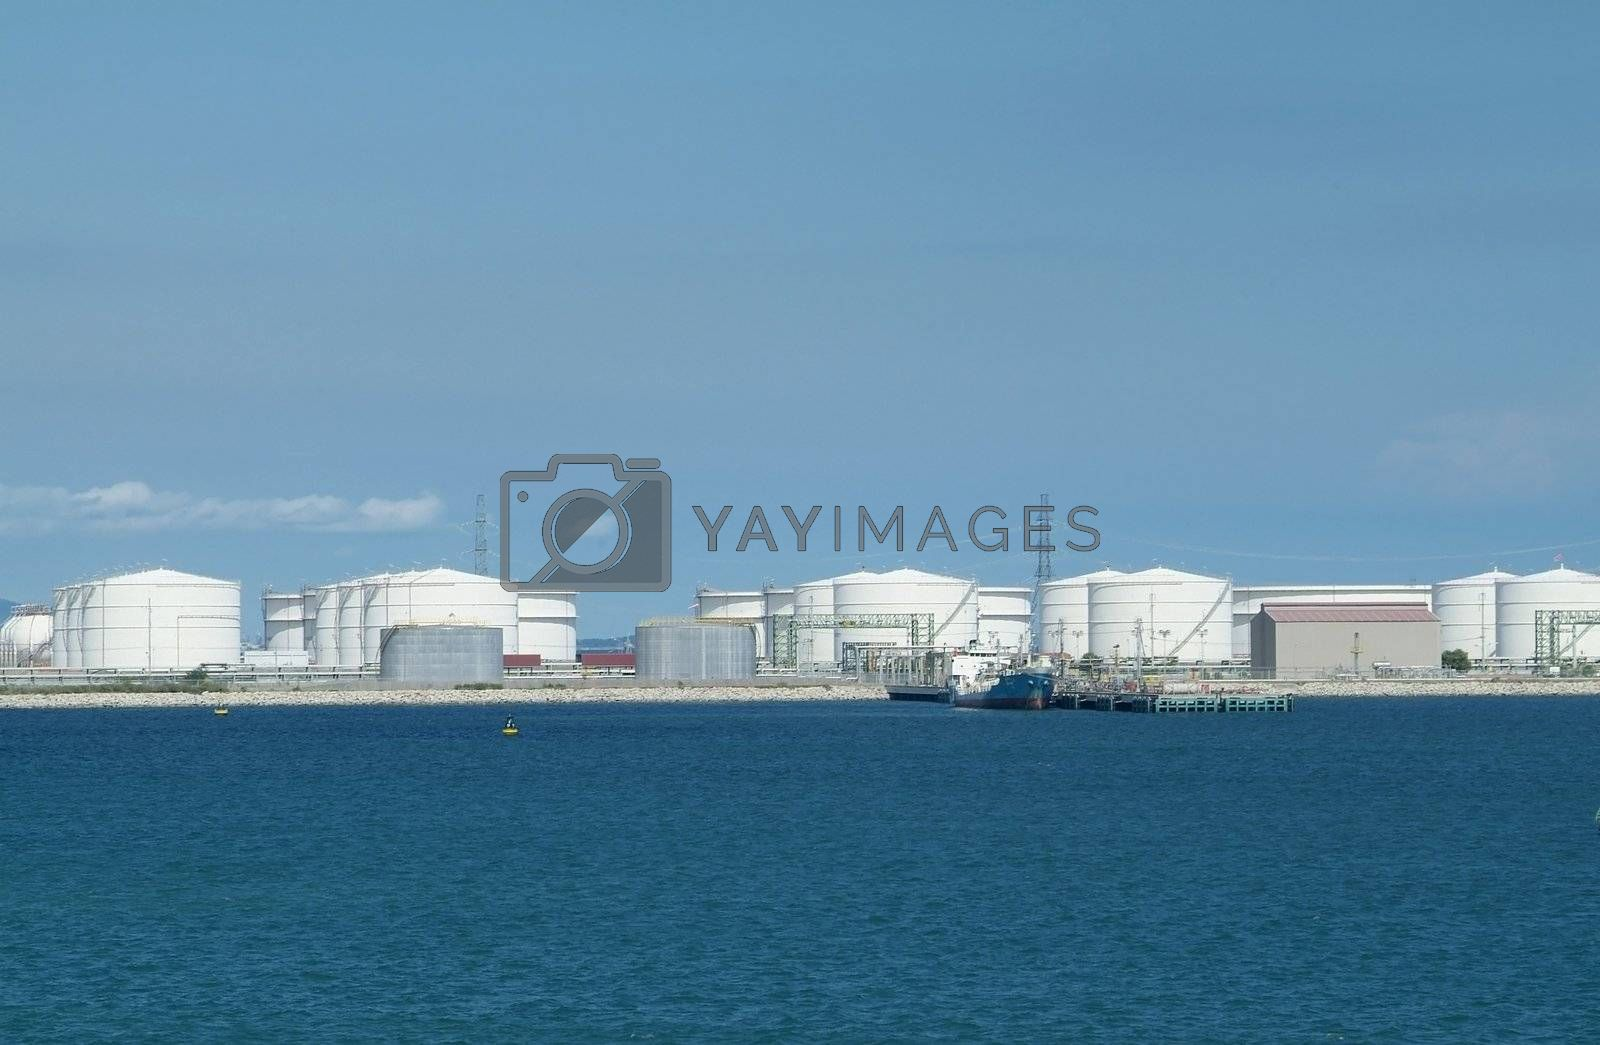 Royalty free image of harbour with oil storage tanks by epixx